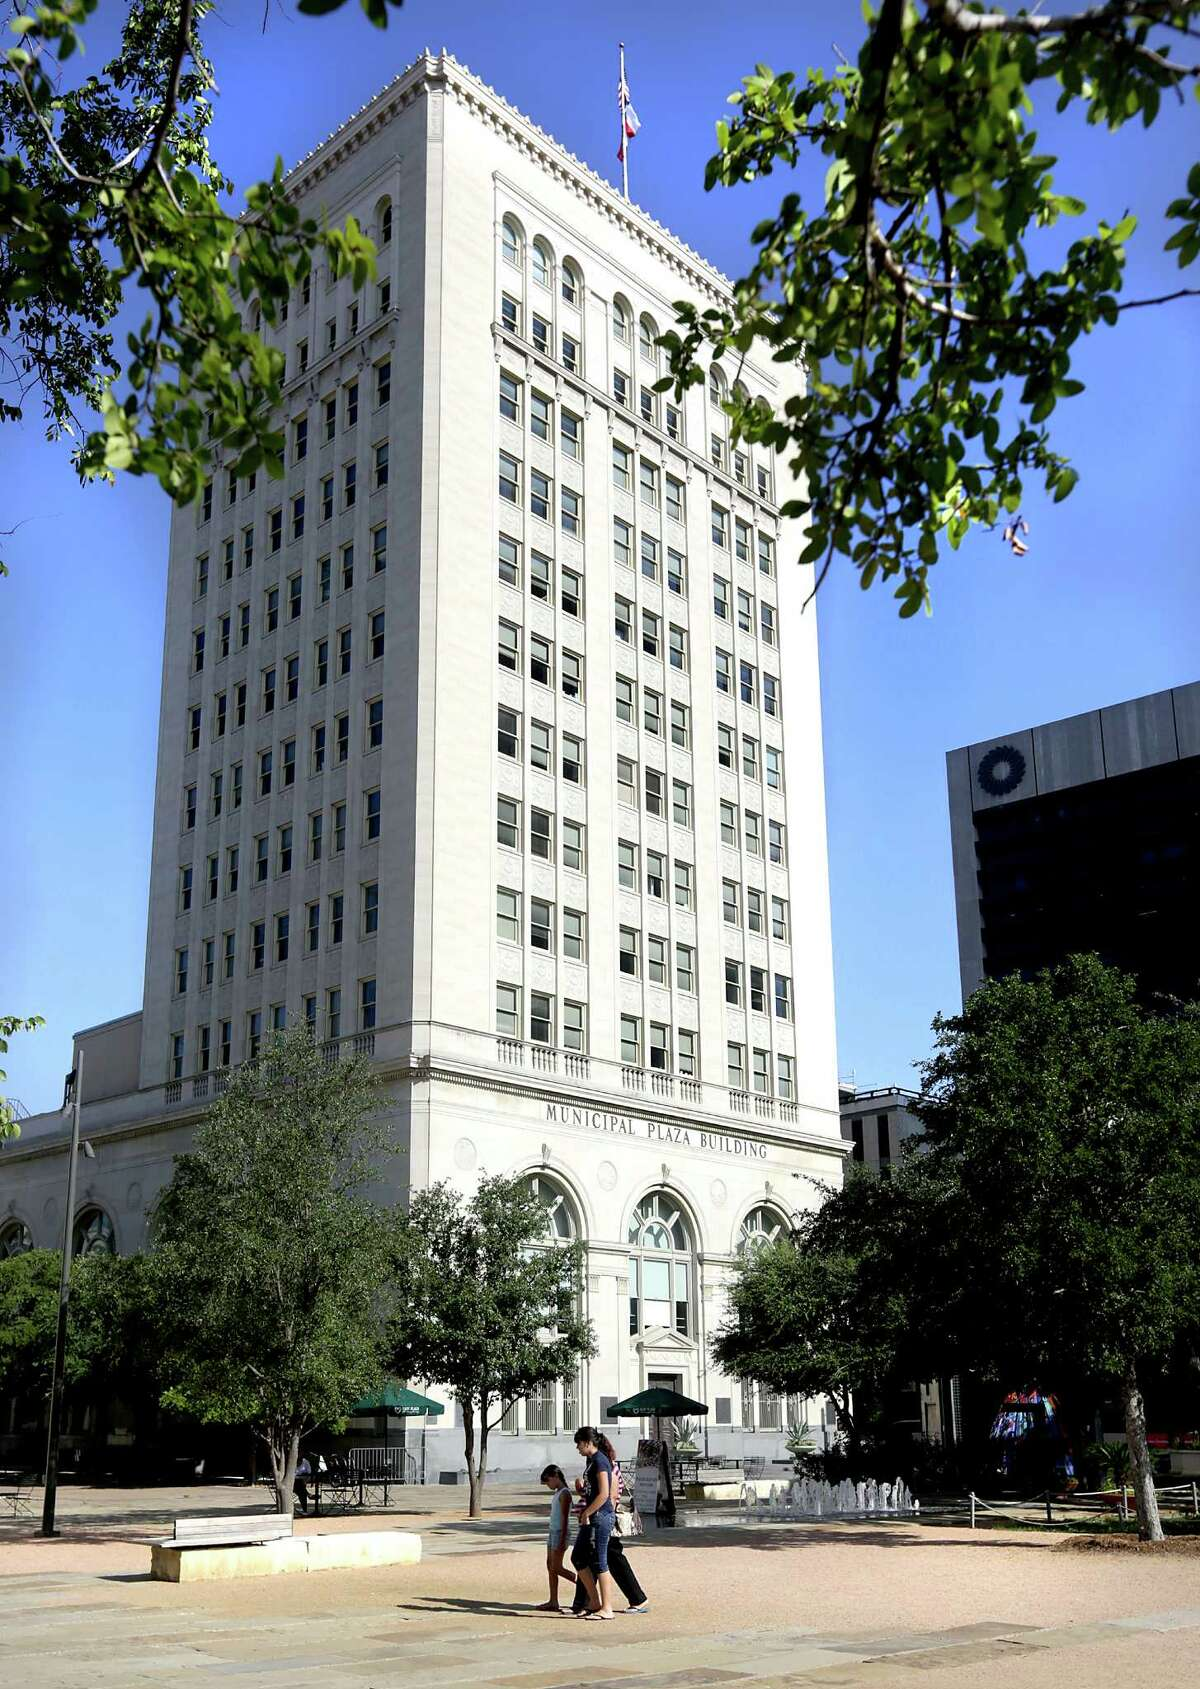 The Municipal Plaza Building at 114 W. Commerce, was the home of Frost Bank back in 1922. Now the building is owned by the city and is where City Council meetings are held, on Wednesday, July 31, 2013. Frost Bank's current location can be seen at right.